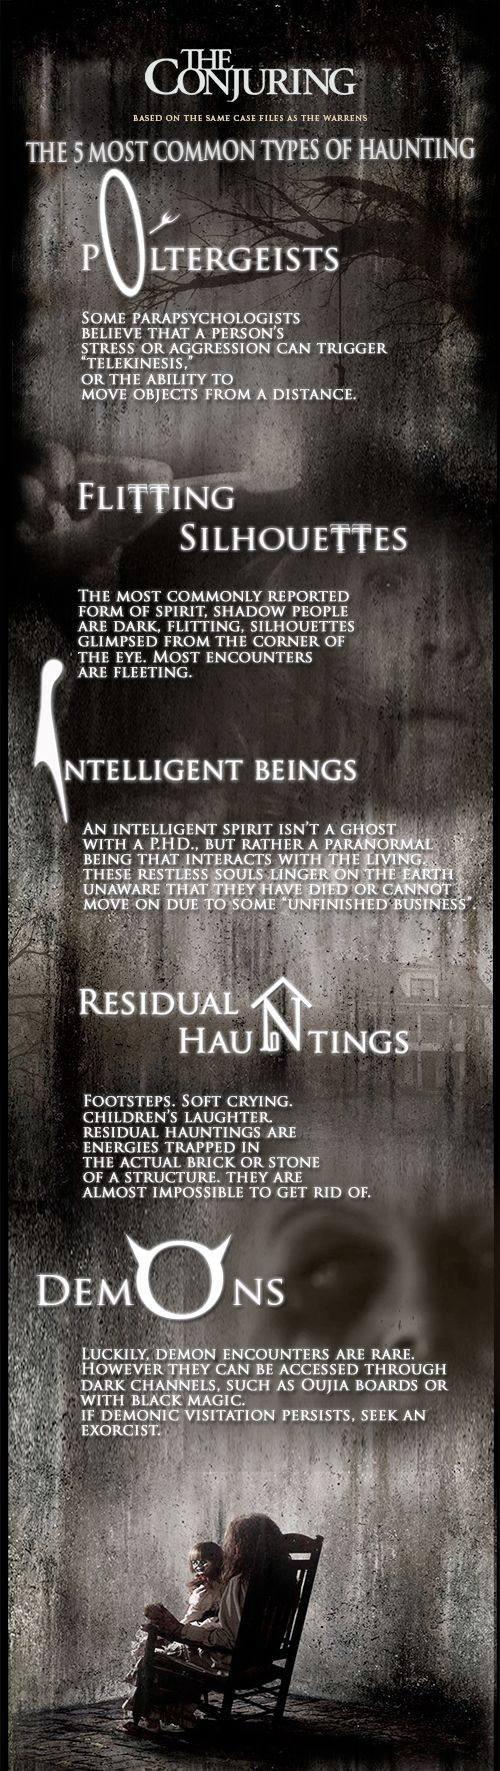 The Conjuring (2013) The 5 Most Common Types of Haunting #theconjuring #film #horror #scary #infographic